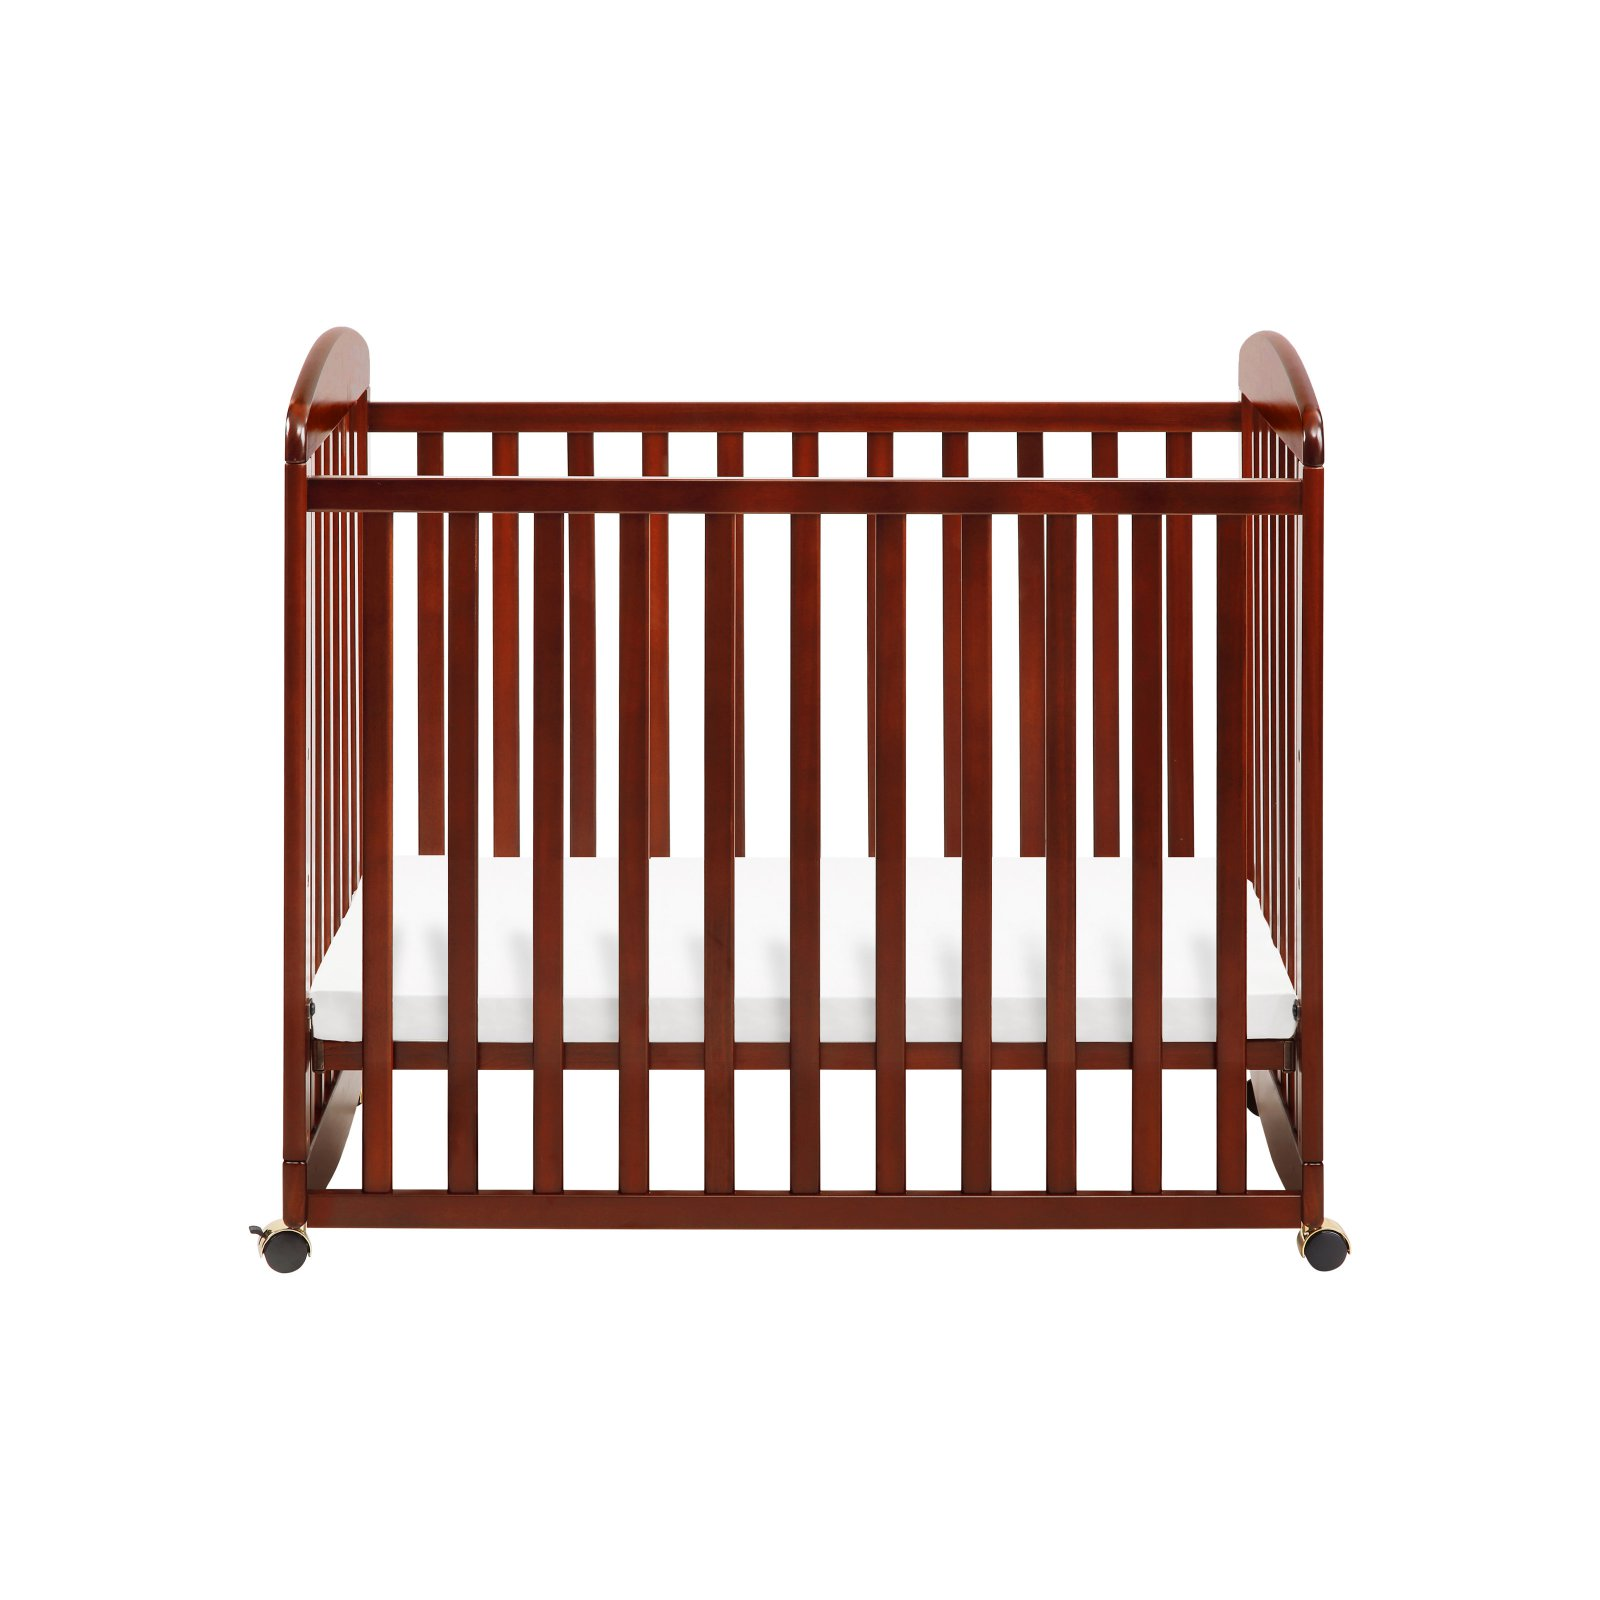 walmart there size annabelle delectable beds are convert to bedroom baby twin turn into davinci conversion that instructions converts do can growg cribs mini crib full